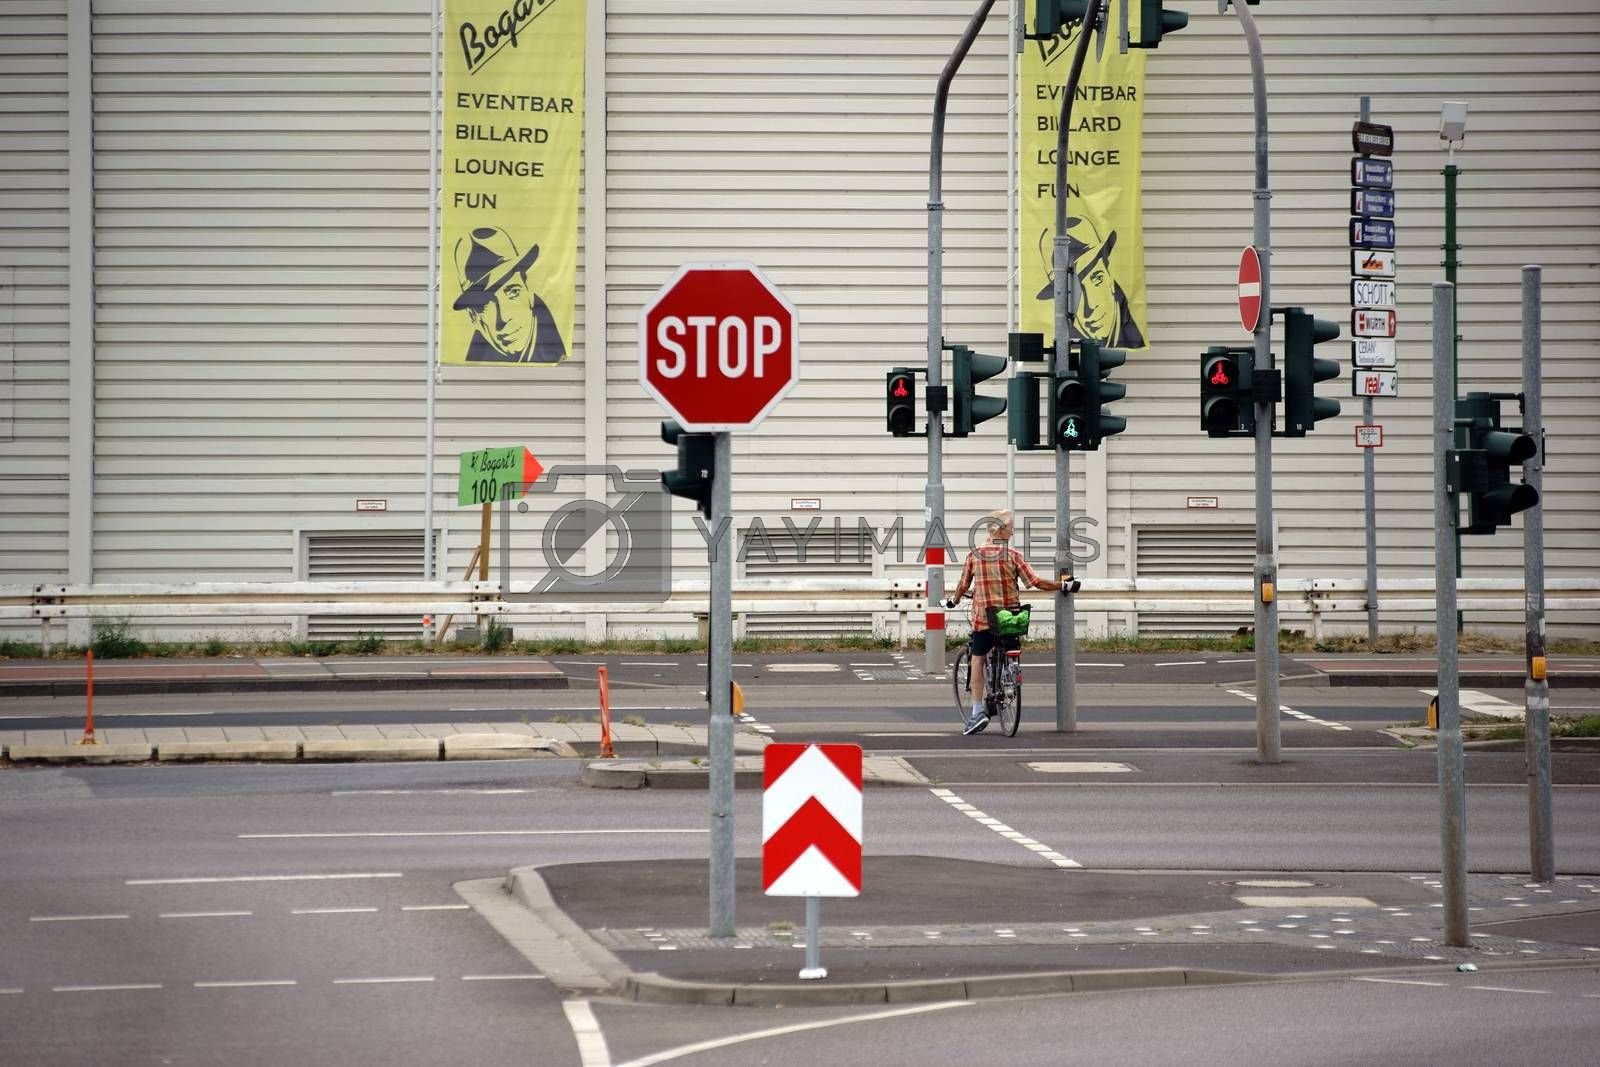 Mainz, Germany - August 14, 2015: A cyclist stands at a red light intersection in front of a hardware store on a street with many traffic signs on August 14, 2015 in Mainz.